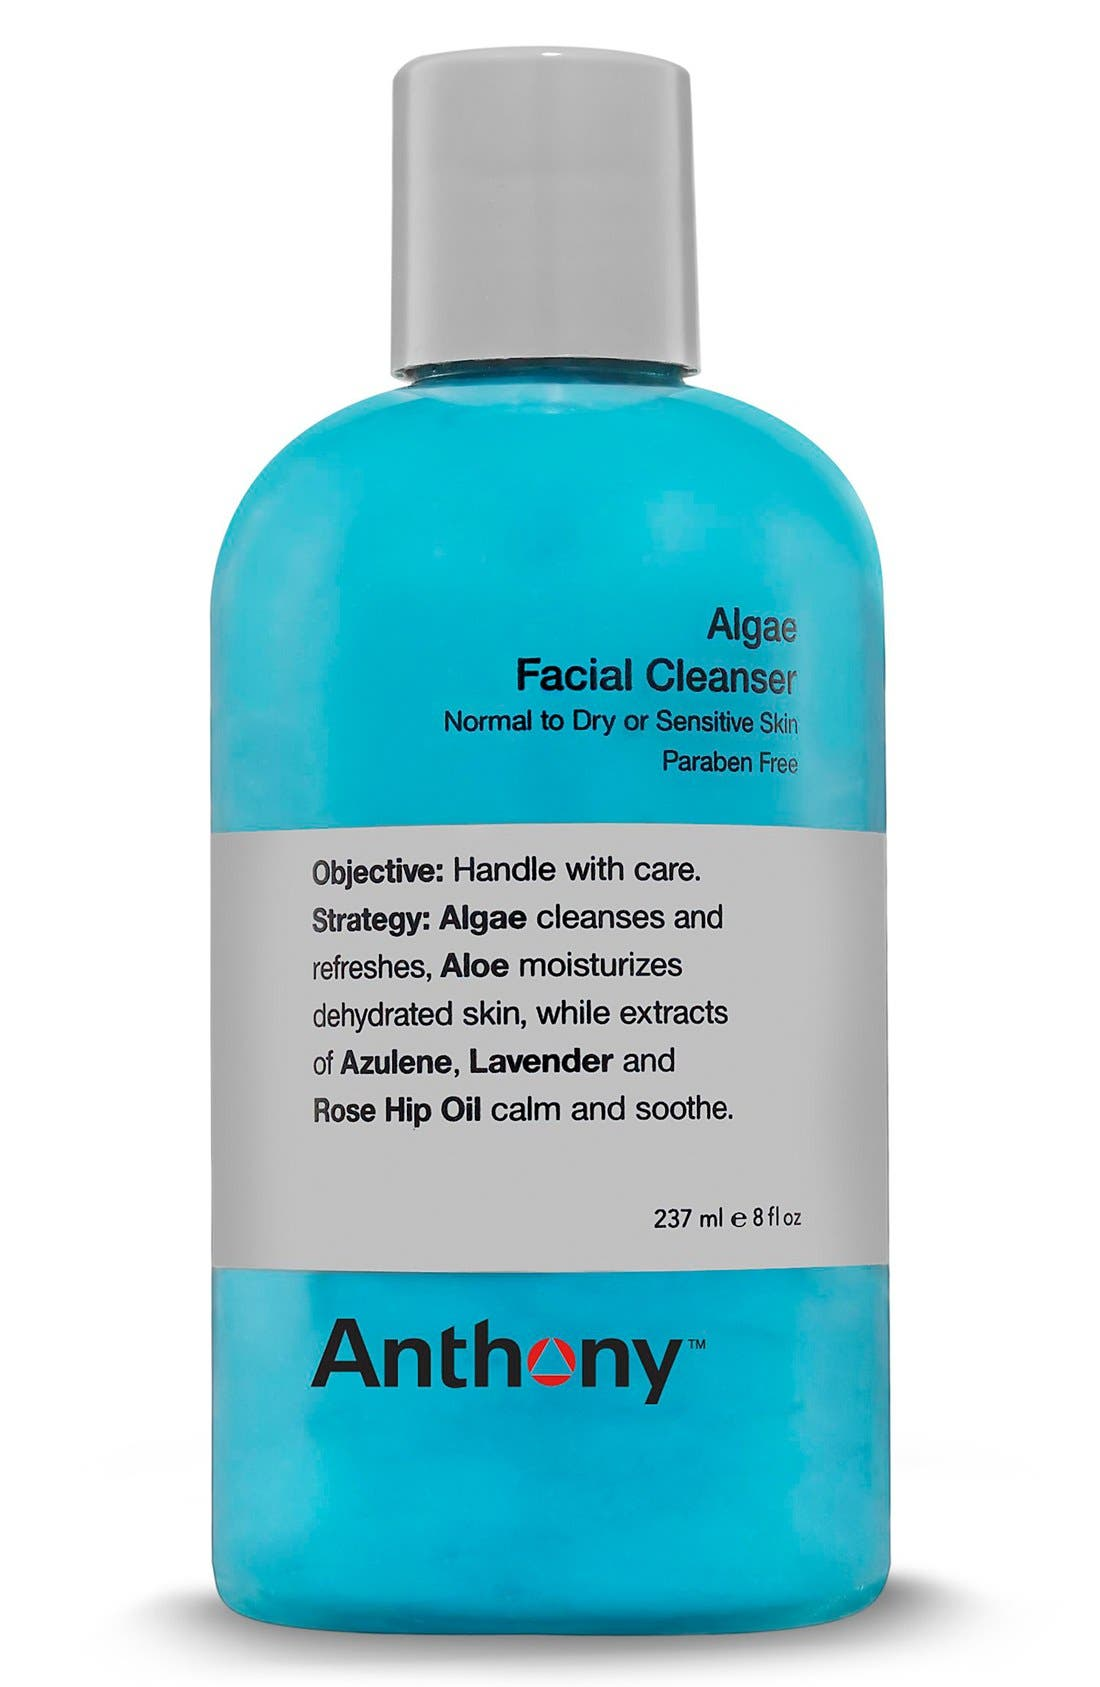 Anthony™ Algae Facial Cleanser